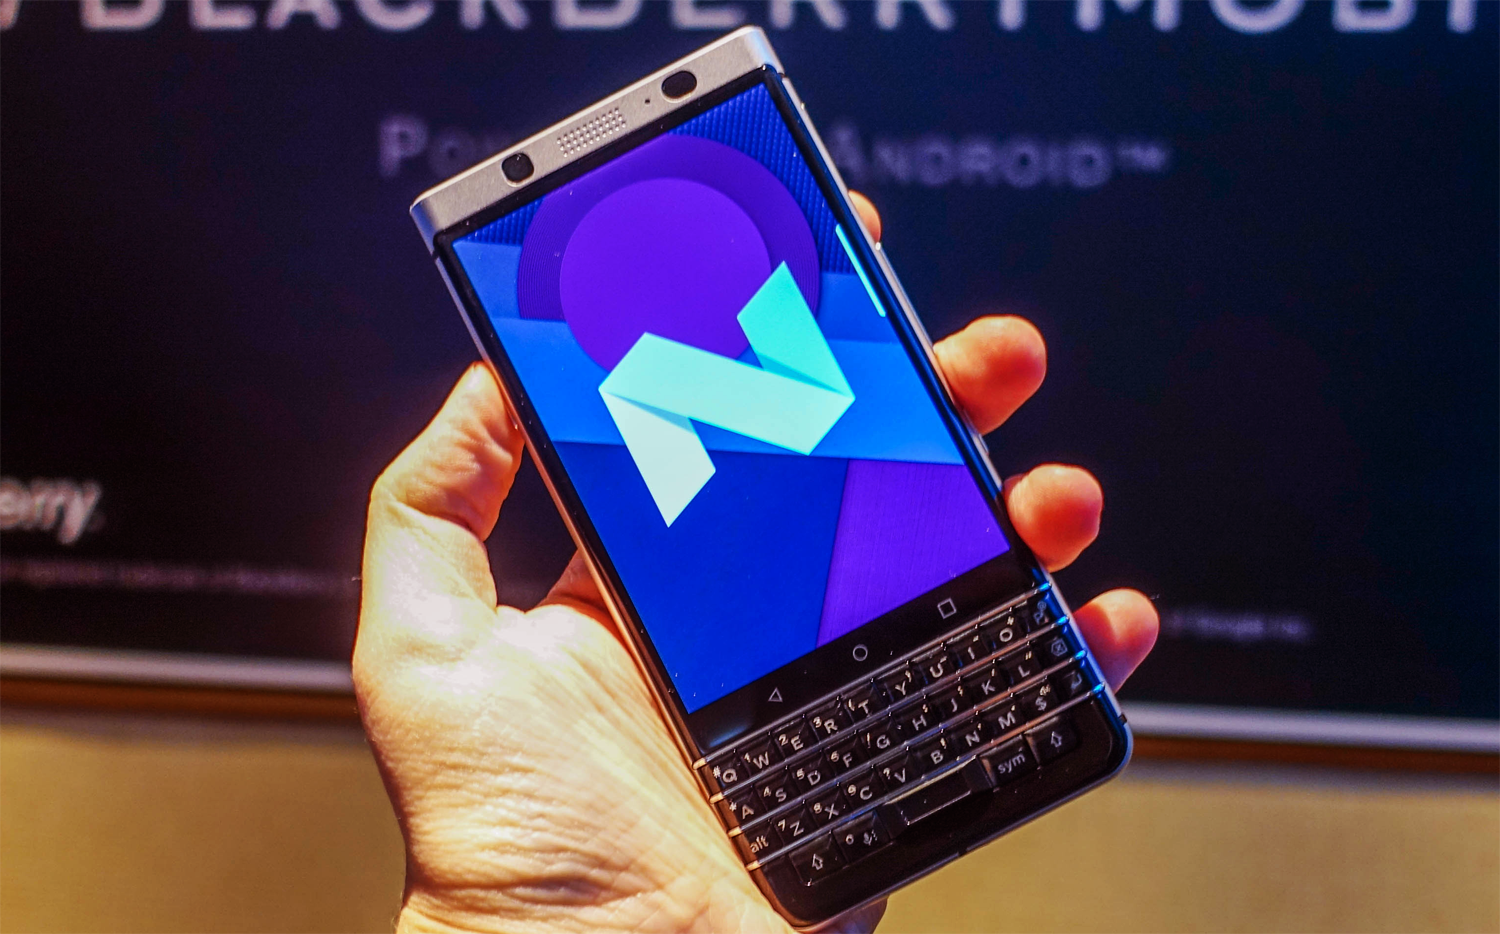 BlackBerry's new Photo is a stylish, great and superfluous device - at the same time